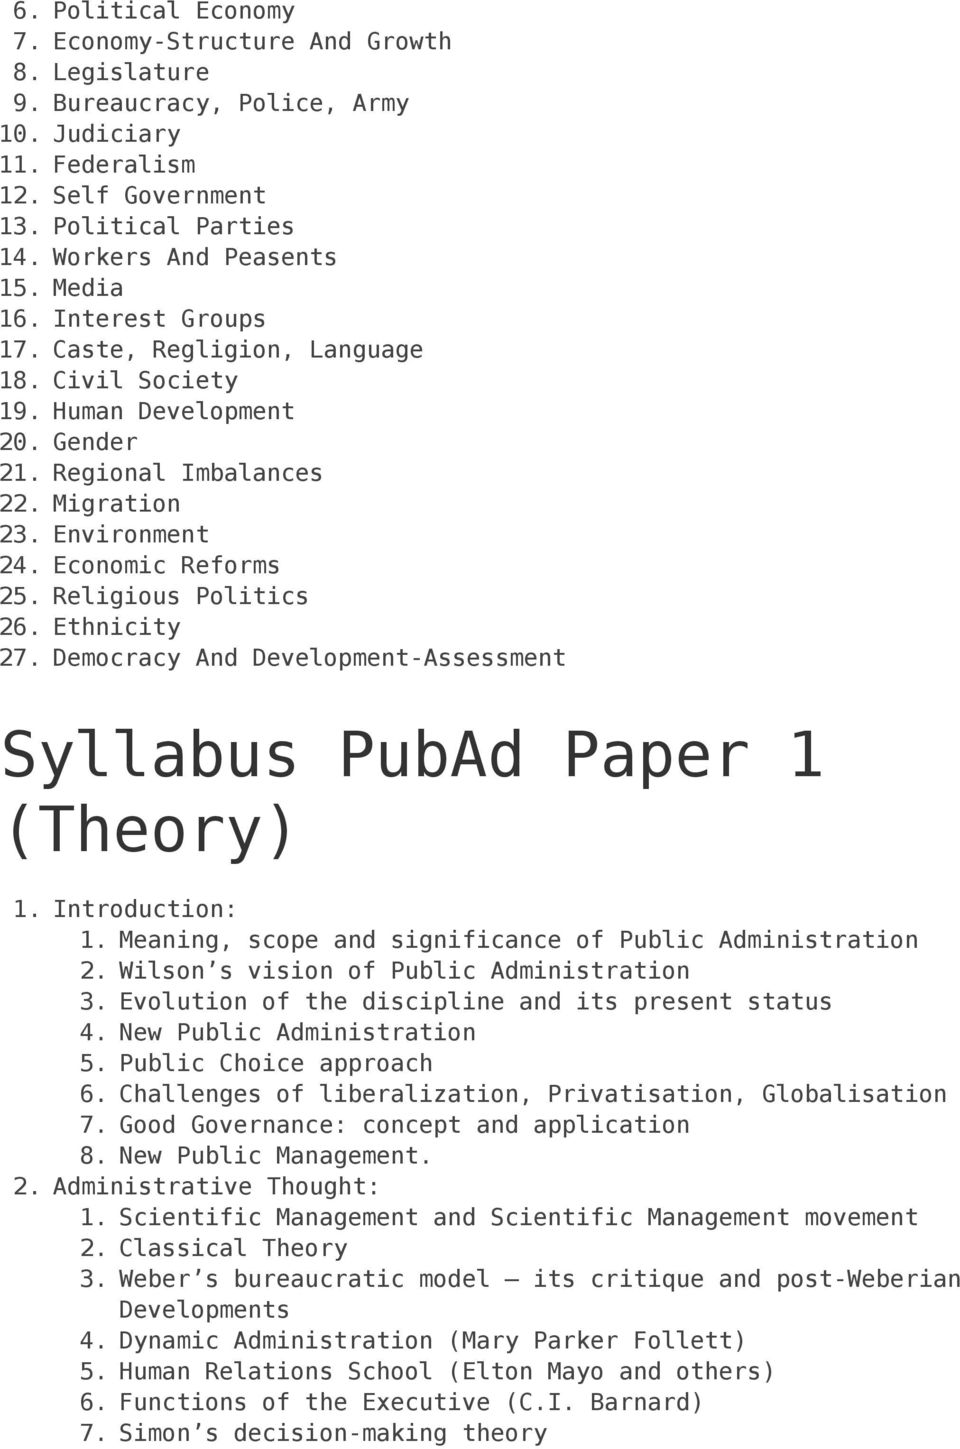 Religious Politics 26. Ethnicity 27. Democracy And Development-Assessment Syllabus PubAd Paper 1 (Theory) 1. 2. Introduction: 1. Meaning, scope and significance of Public Administration 2.